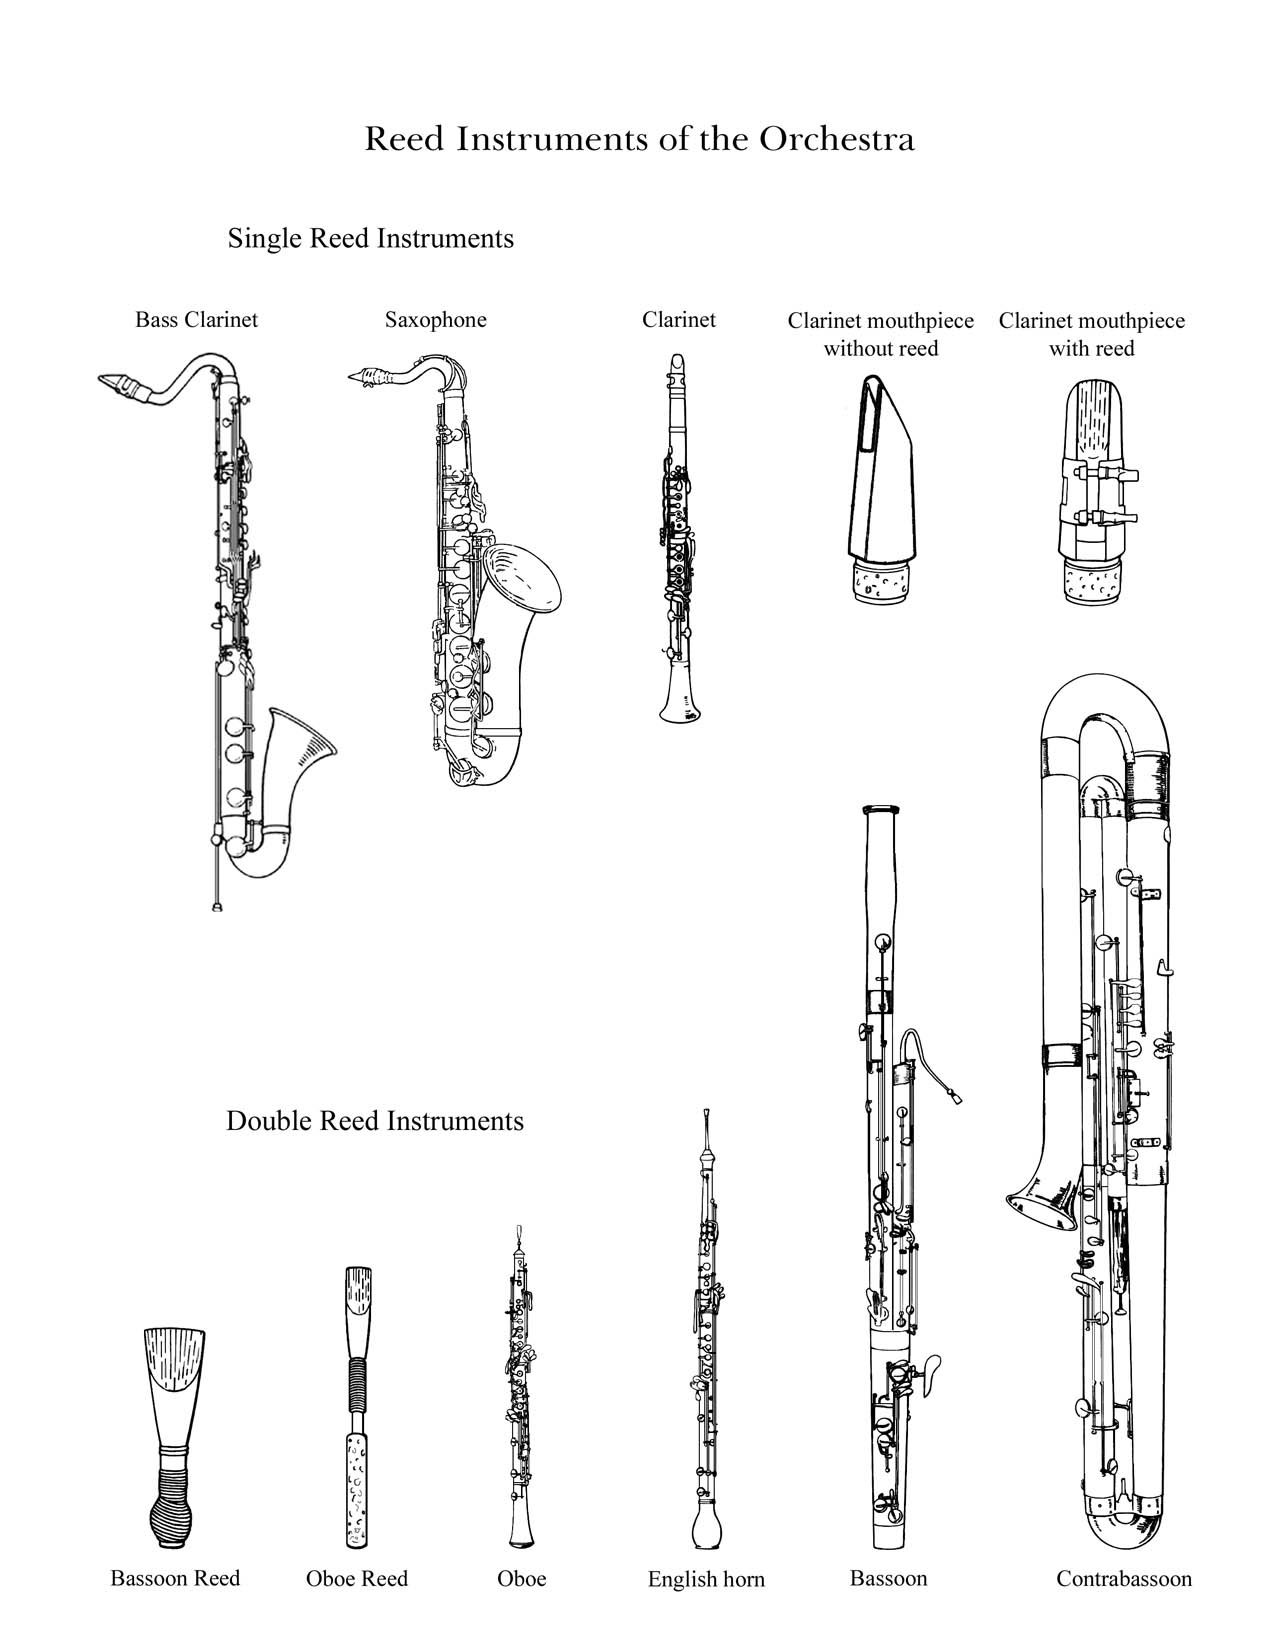 u0026quot the reed family u0026quot    drawings of instruments in the reed